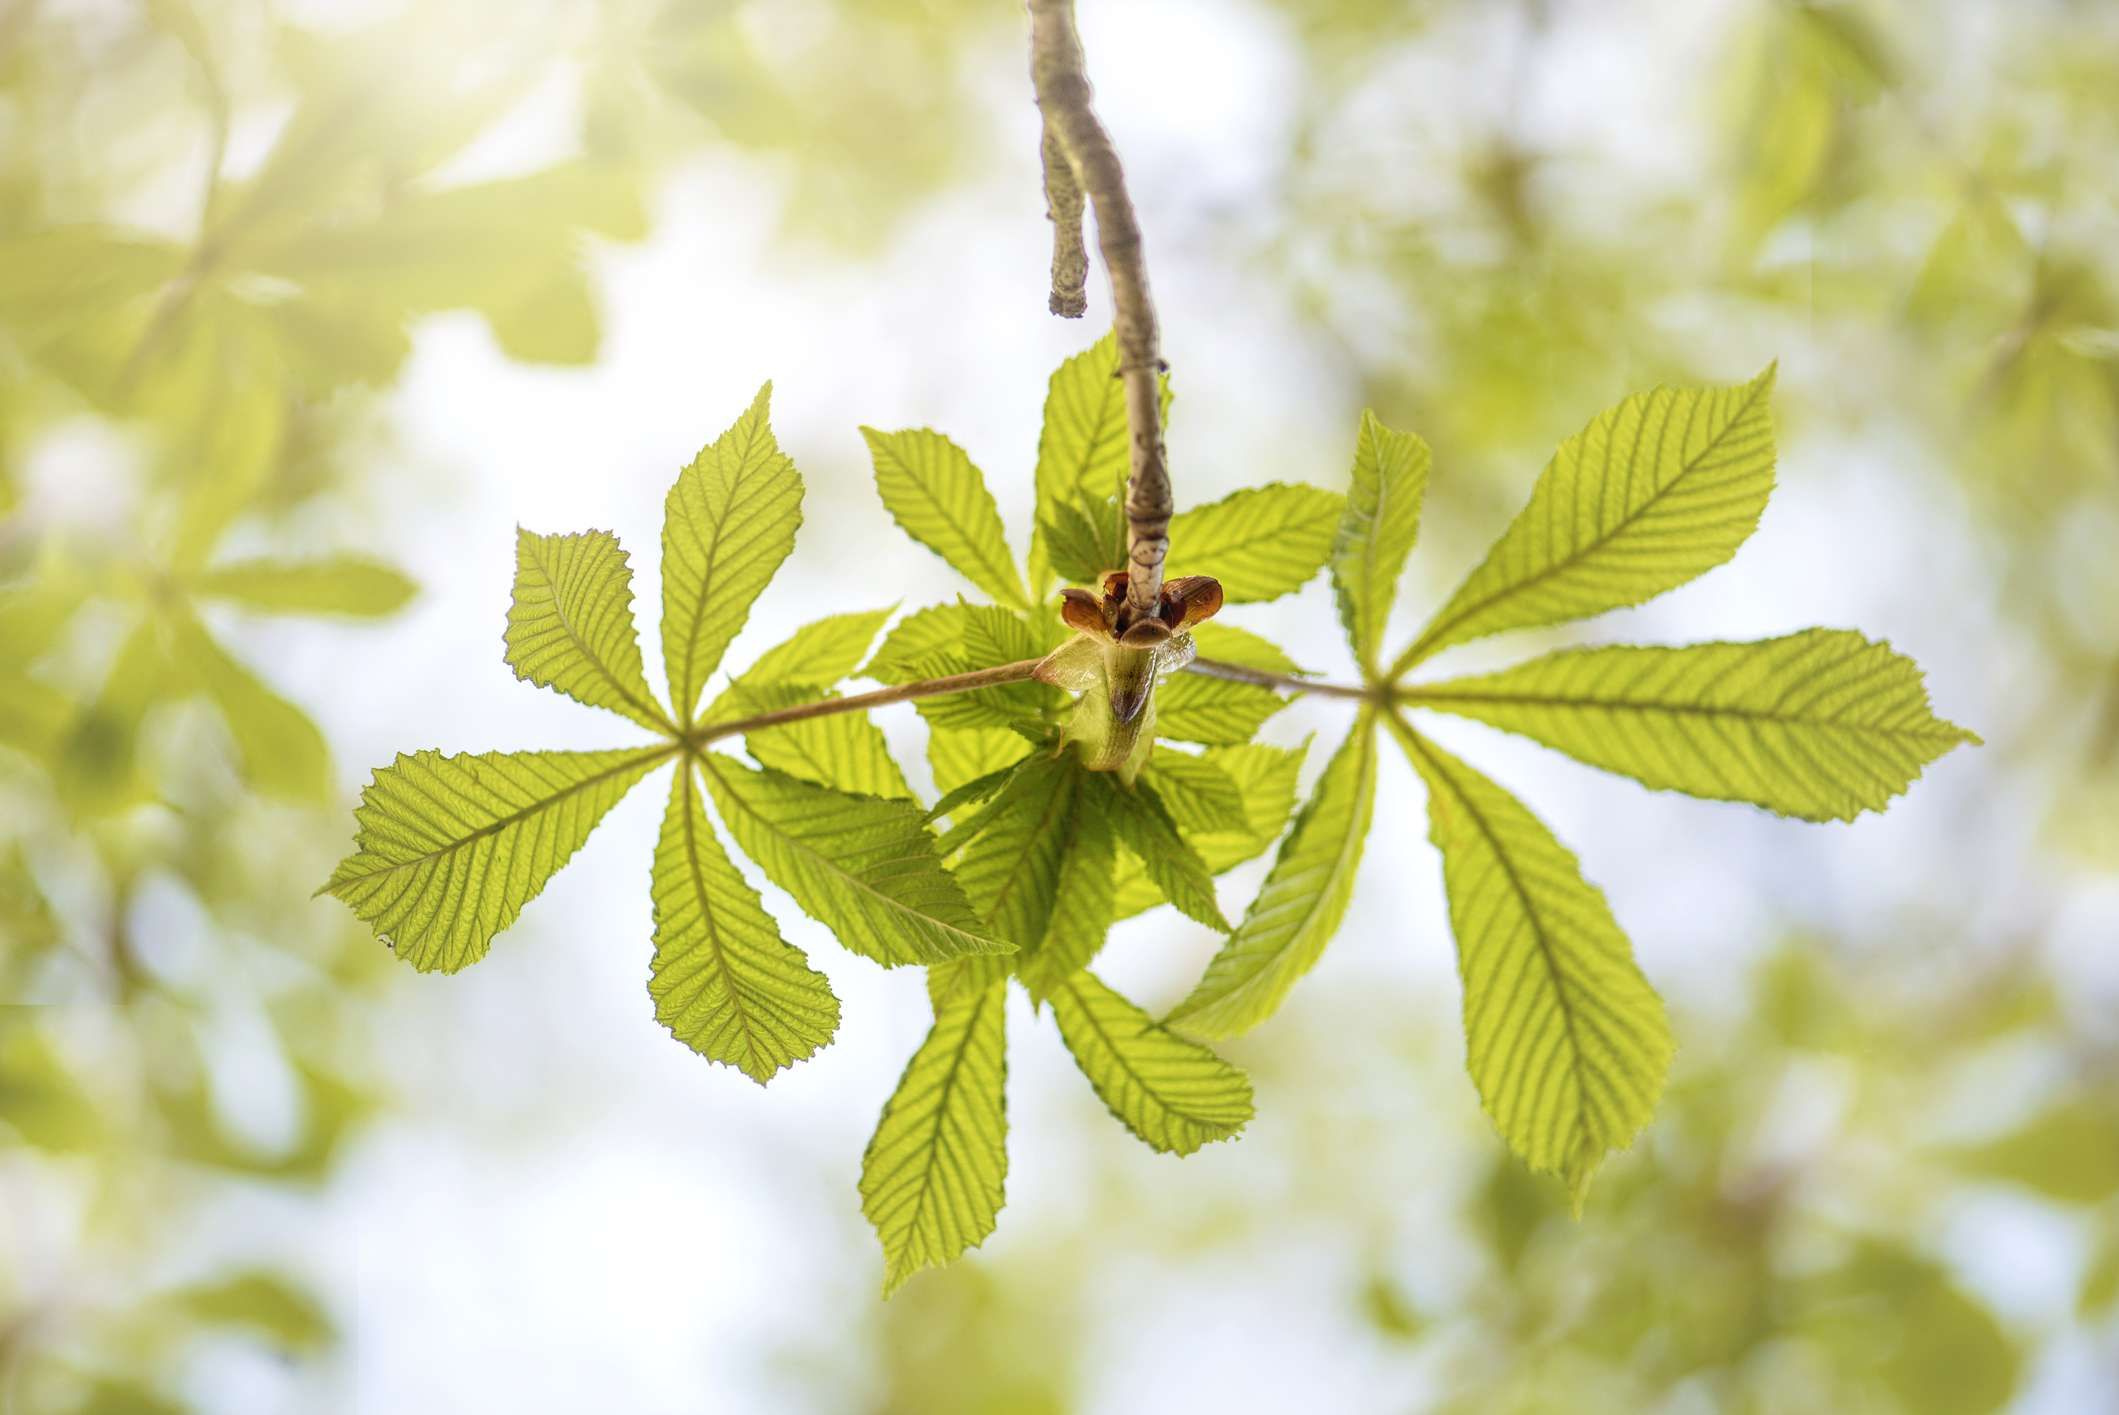 Close-up image of vibrant, green Horse Chestnut leaves in the spring.